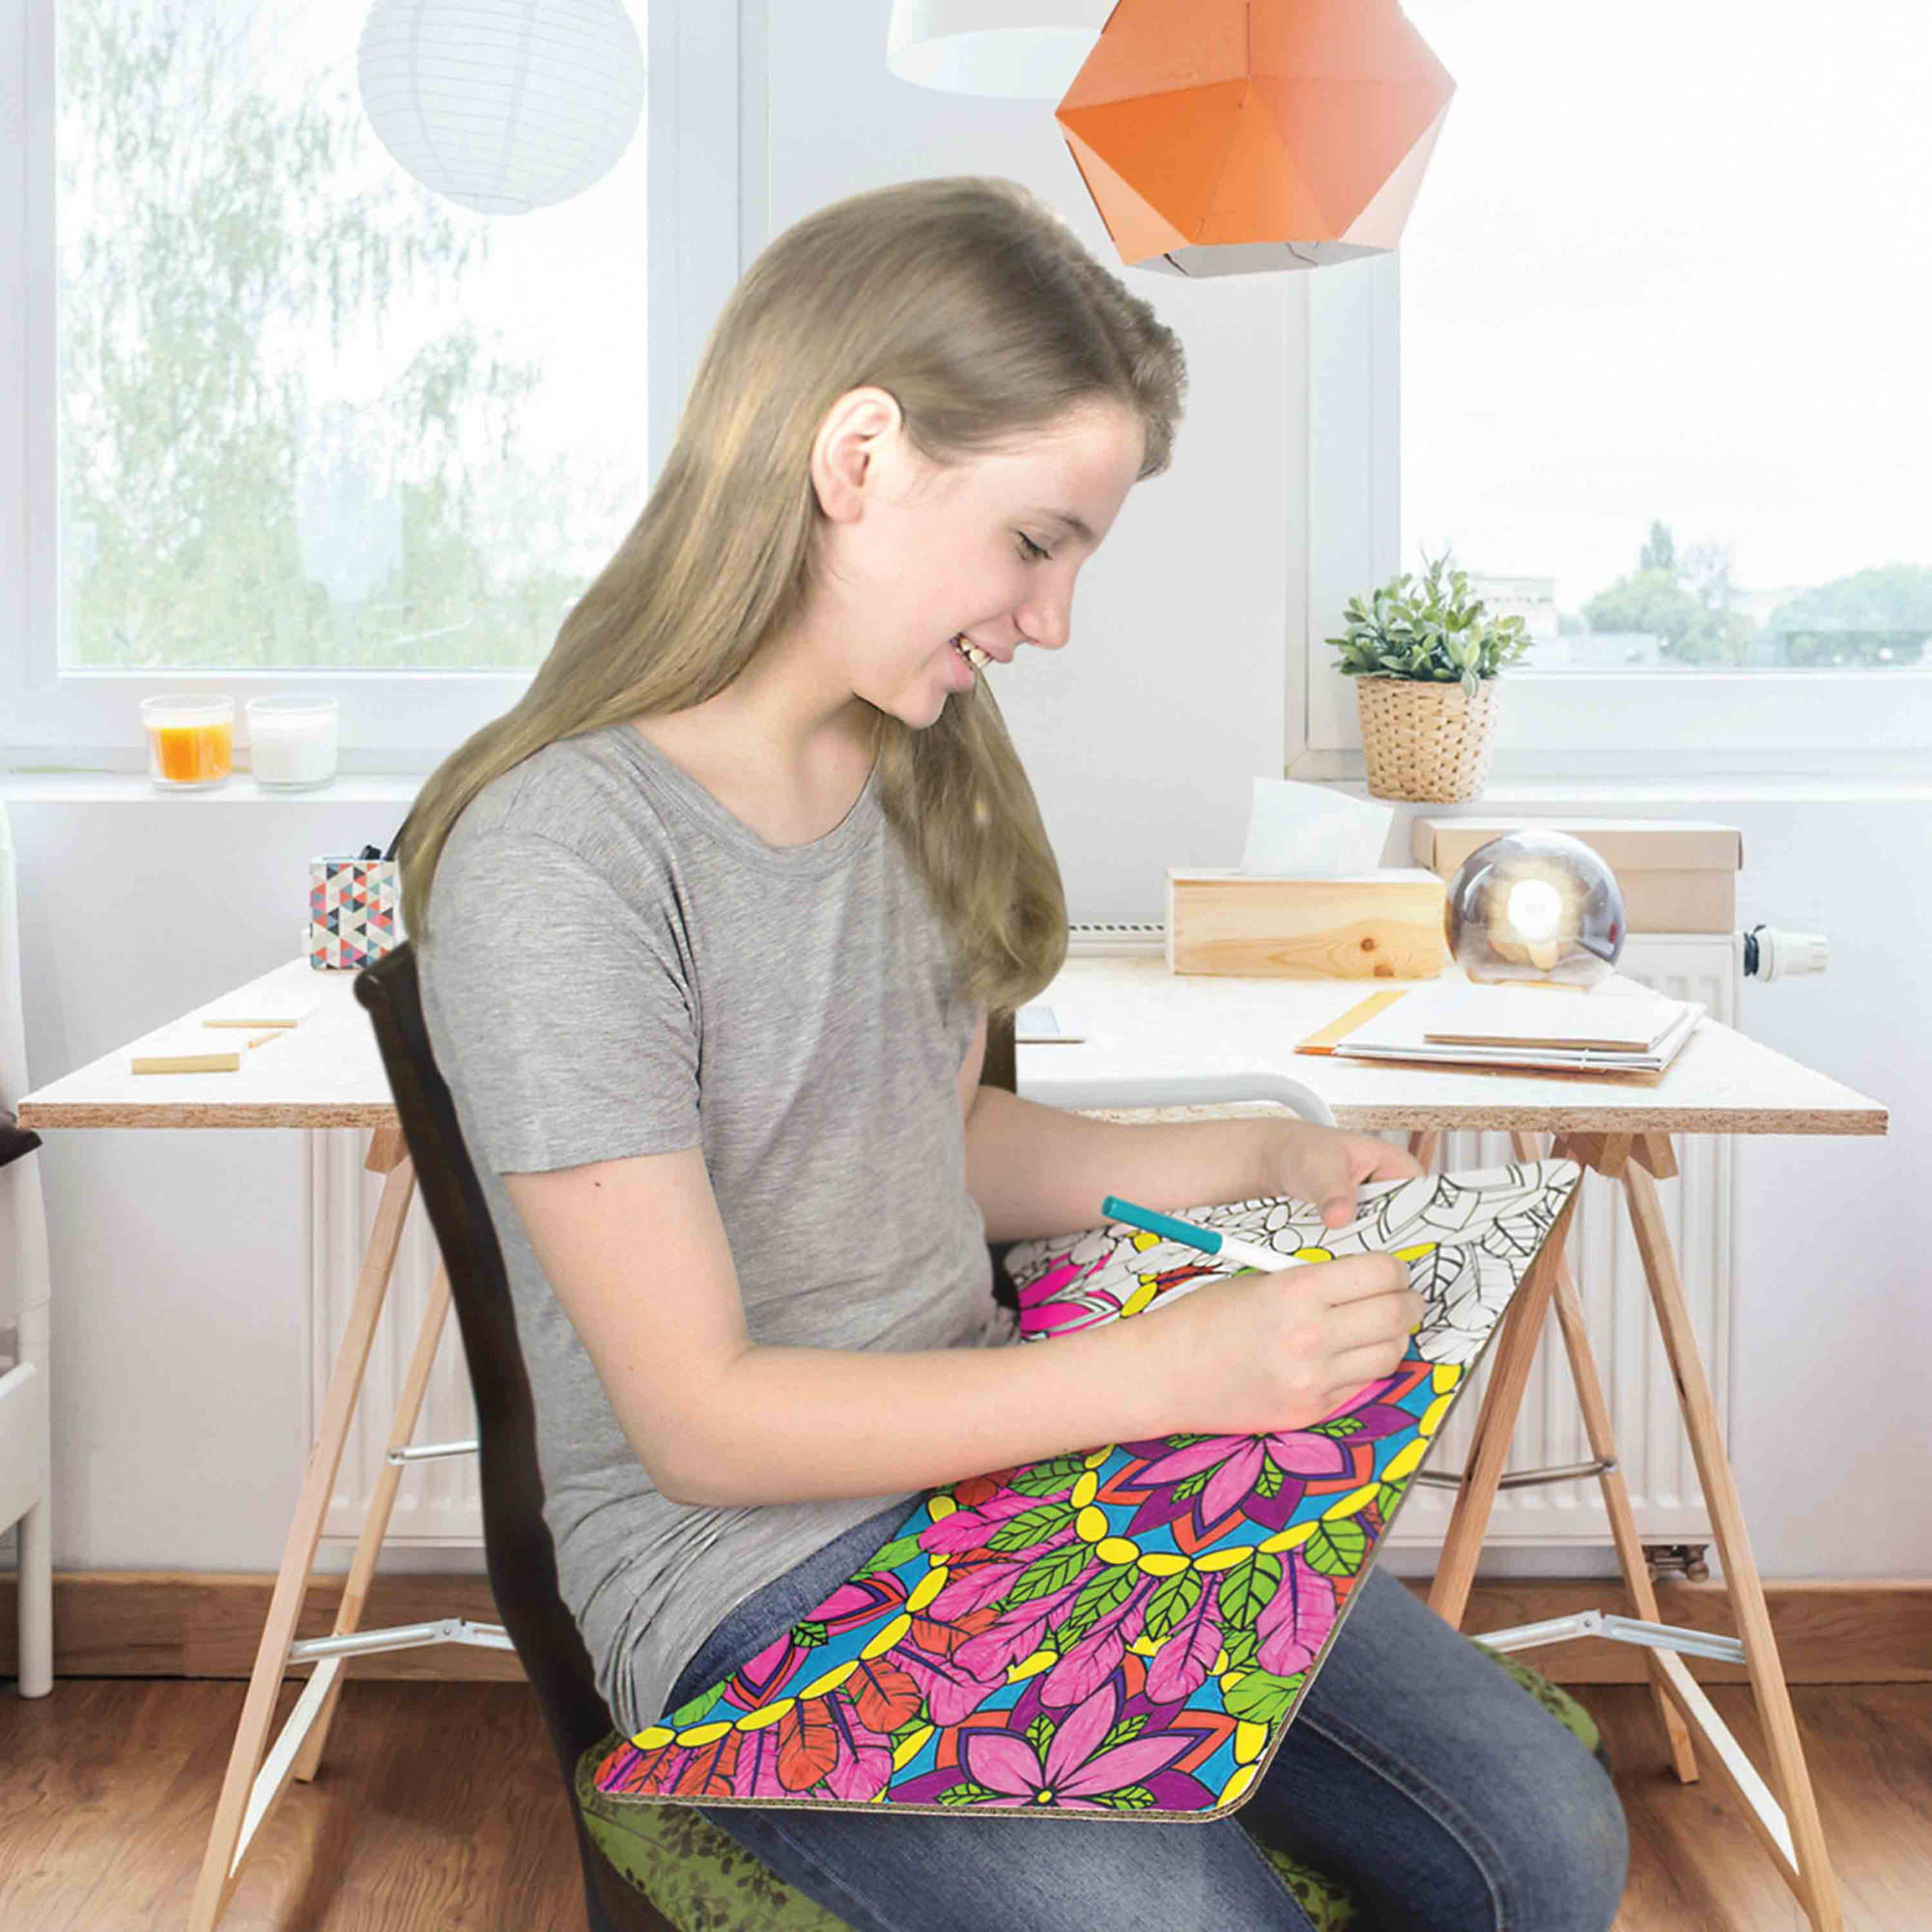 BADA BOARDS Foldable, Portable Lap Desk and Color-On Side with Crayons by Trotta Trails LLC